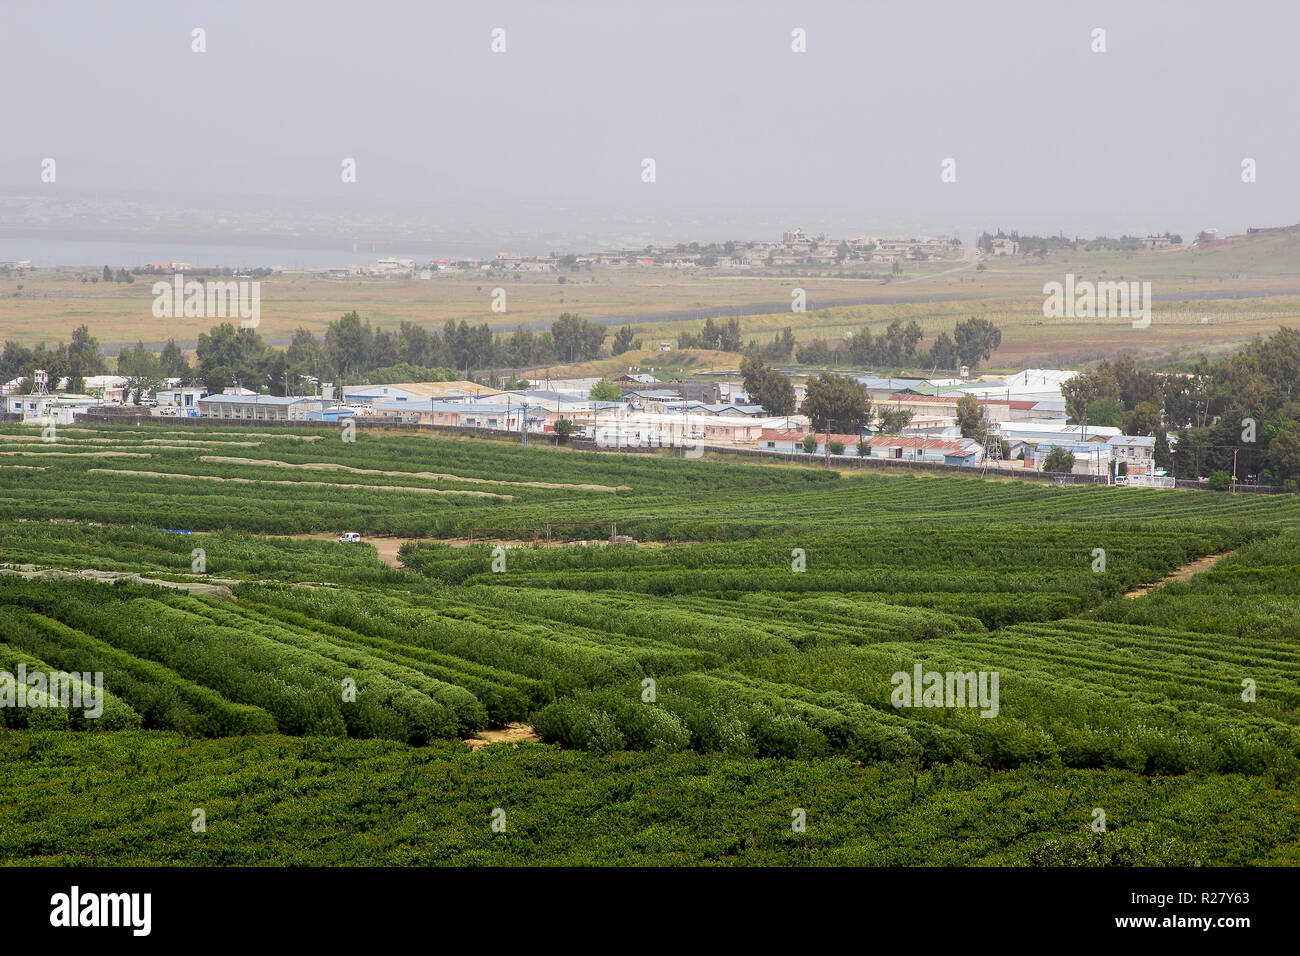 4 May 2018 The UN military base Camp Faouar in Syria close to the Israeli border as seen from the Northern Golan Heights in North East Israel - Stock Image